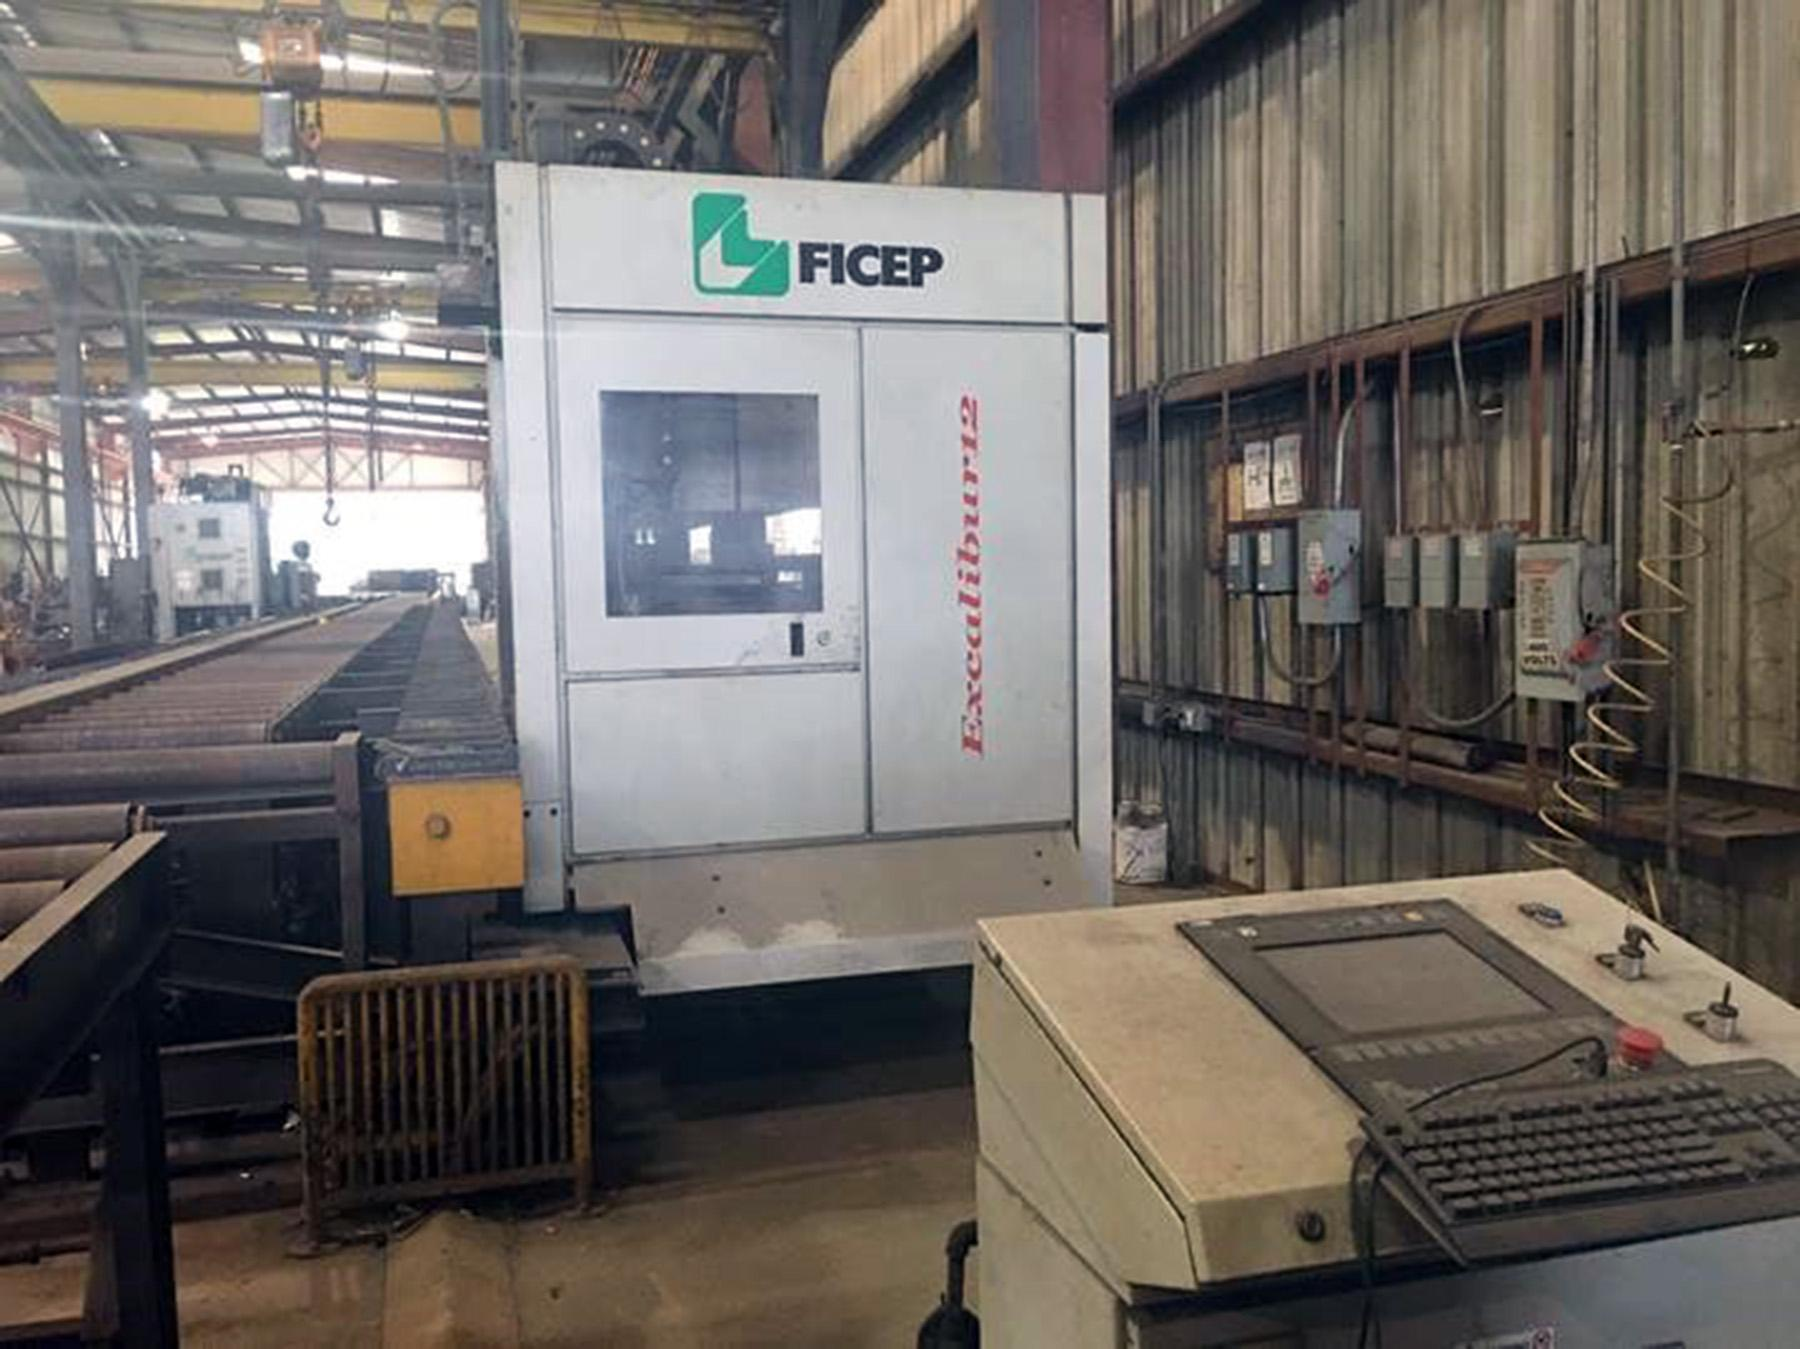 USED, FICEP EXCALIBUR 12 CNC SINGLE SPINDLE BEAM DRILL LINE